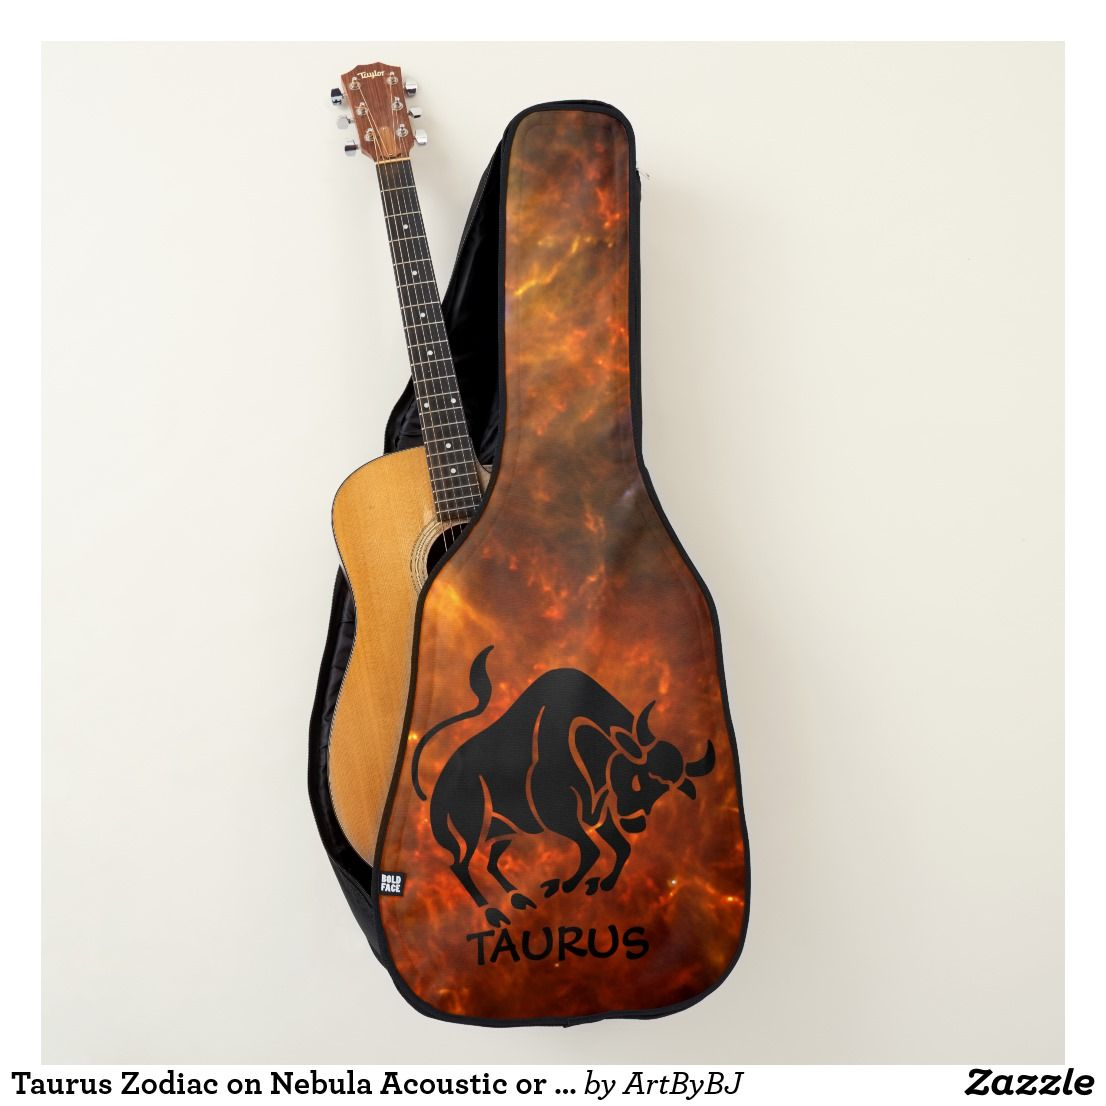 Taurus Zodiac On Nebula Acoustic Or Electric Guitar Case Great New Range Of Cases For Electric Guitars Al Guitar Case Guitar Electric Guitar Case